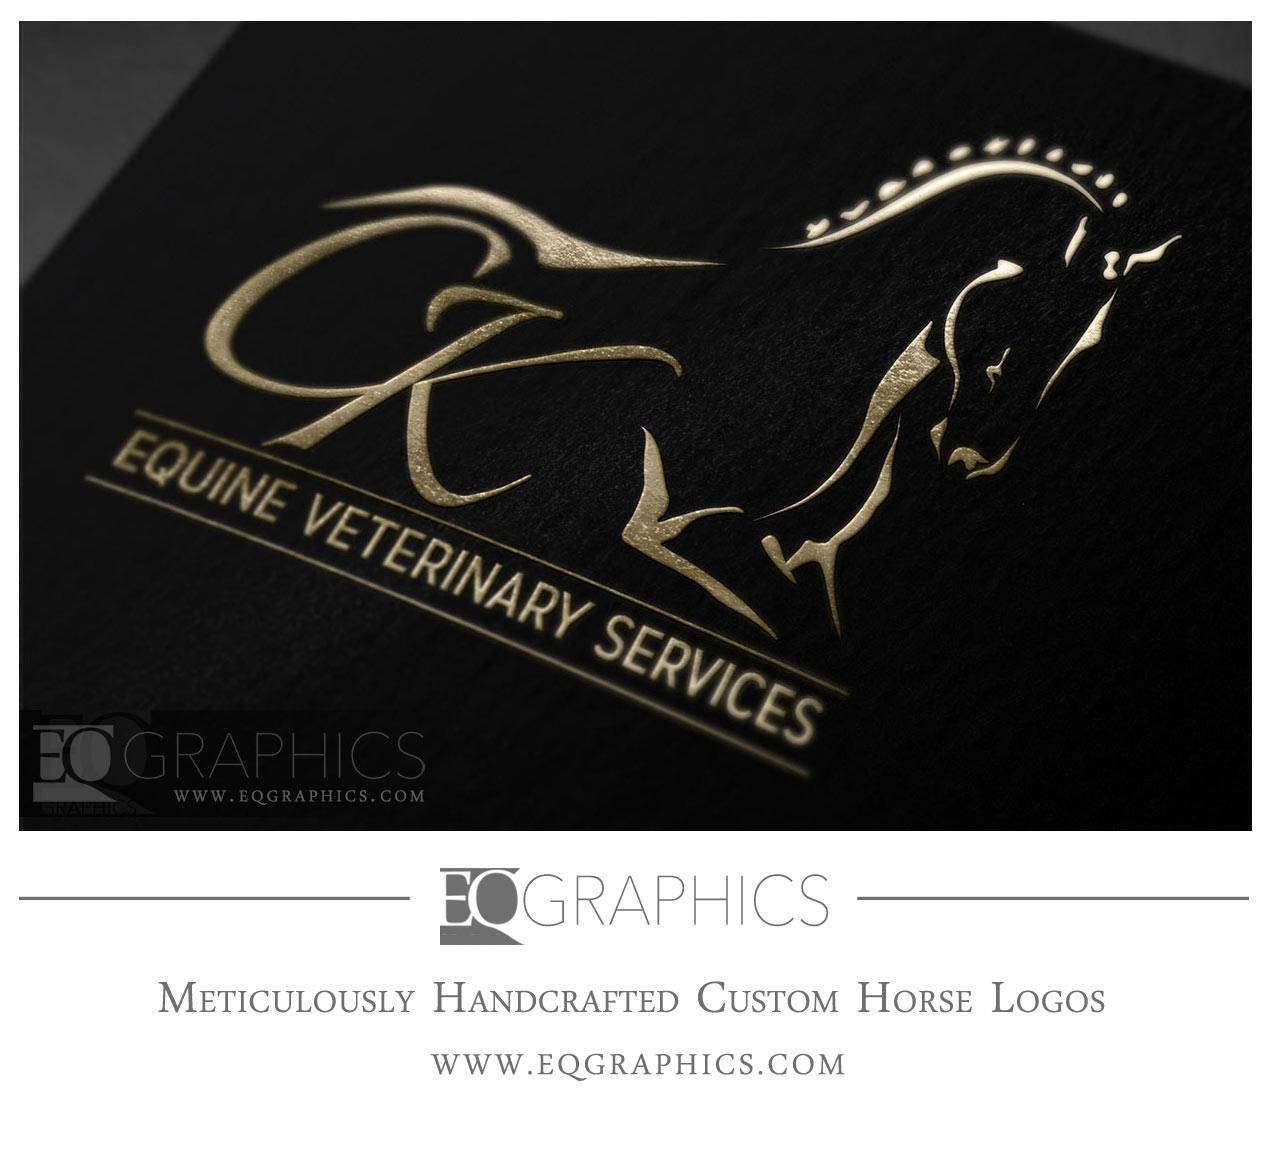 CK Equine Veterinary Services Wellington FL Logo Design by EQ Graphics Horse Veterinarian Logos